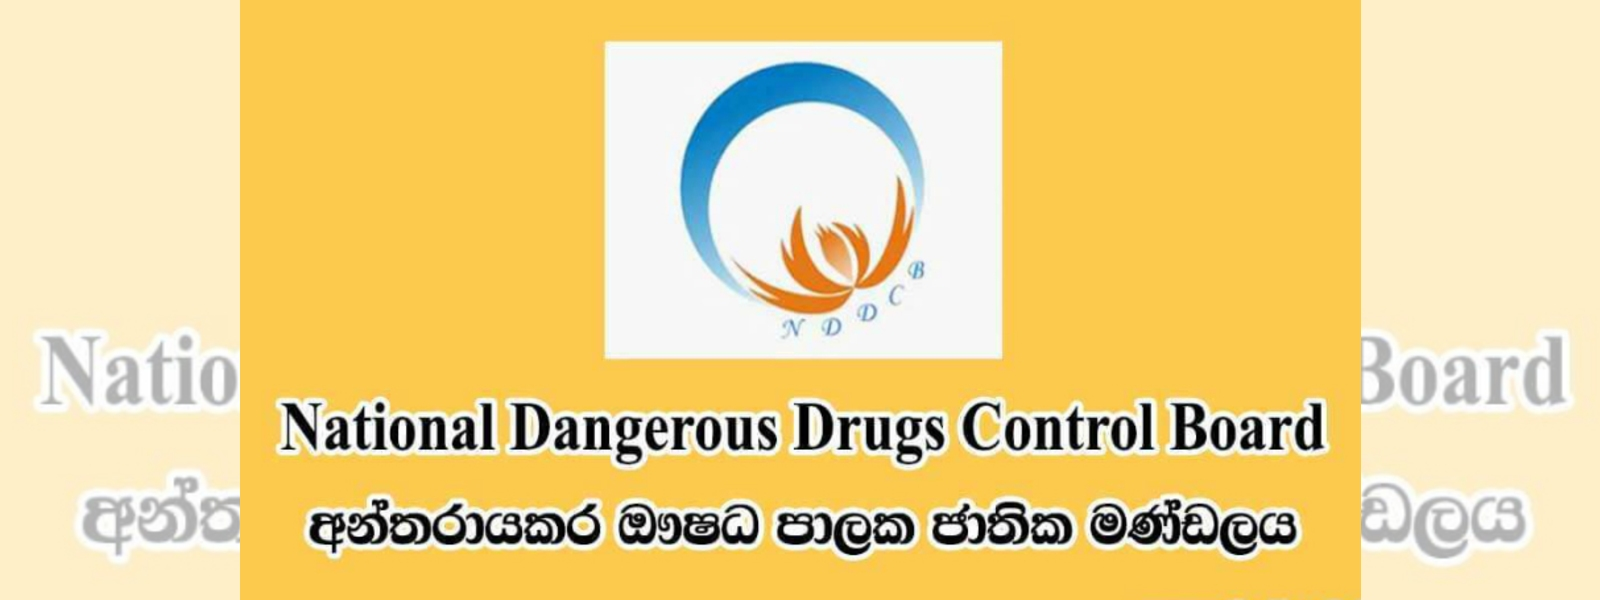 Emergency hotline 1927 for counselling for drug addicts: NDDCB